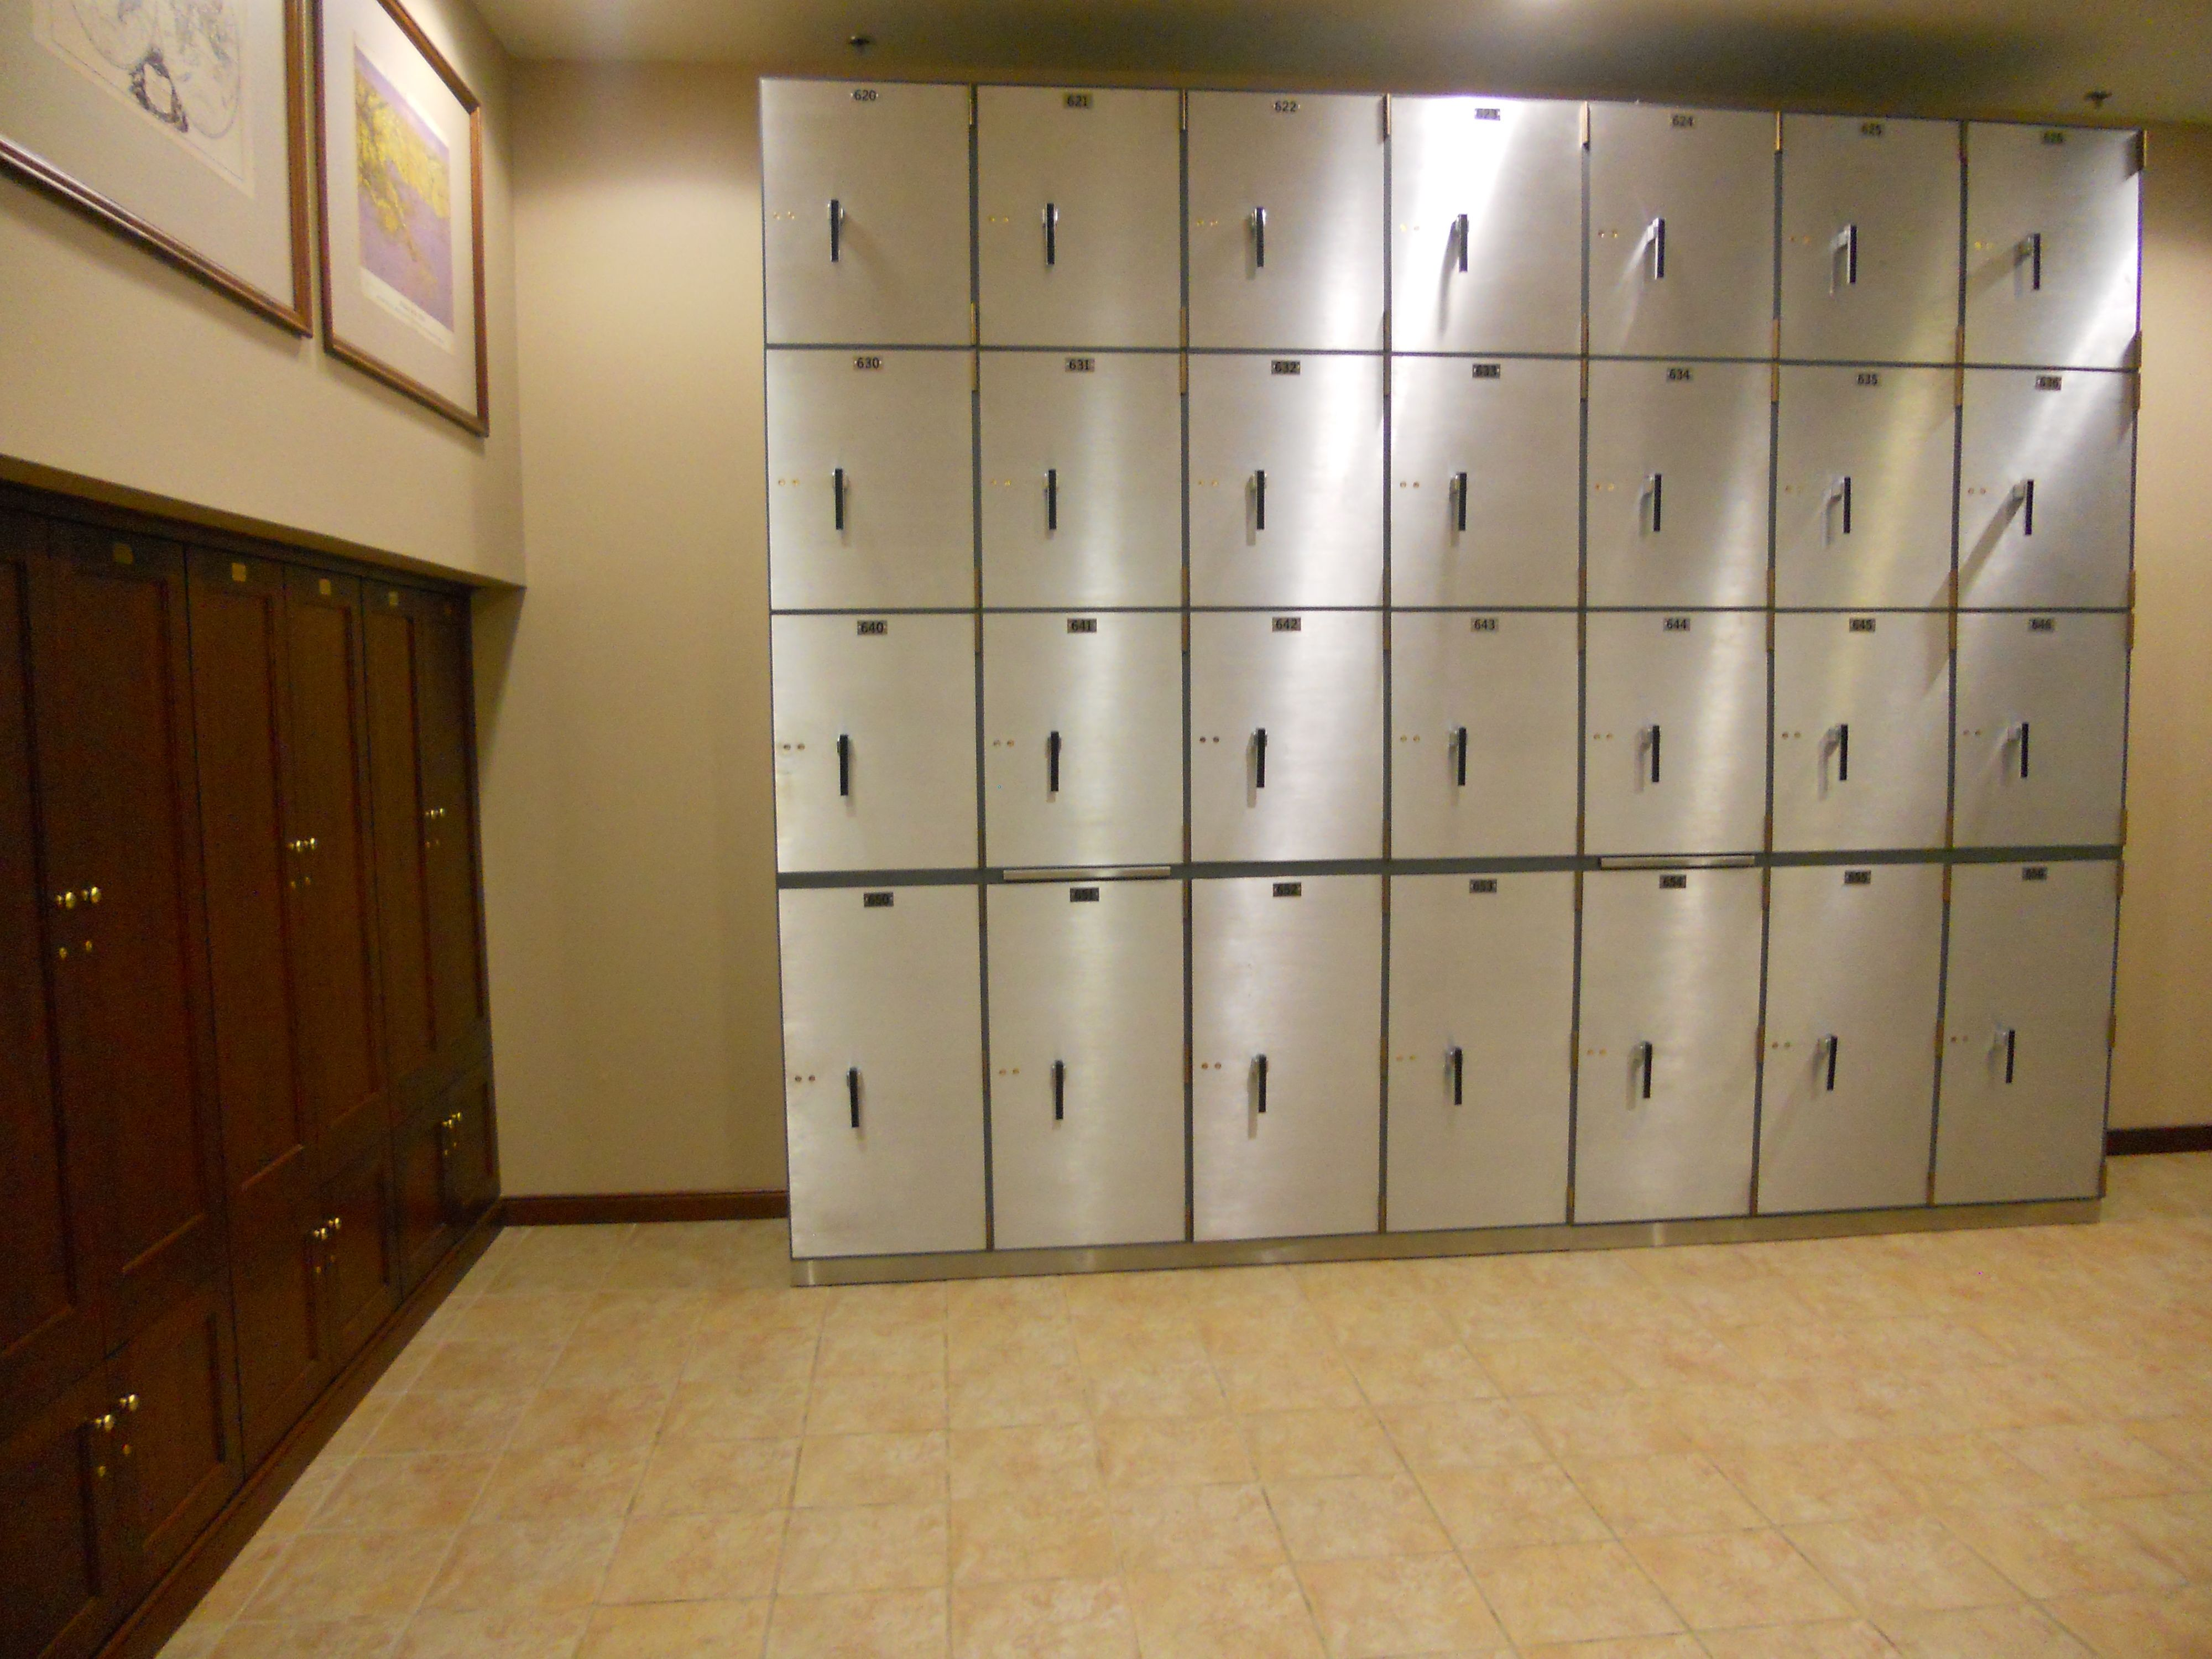 Private Bank Vault The vault includes safe deposit boxes and gun